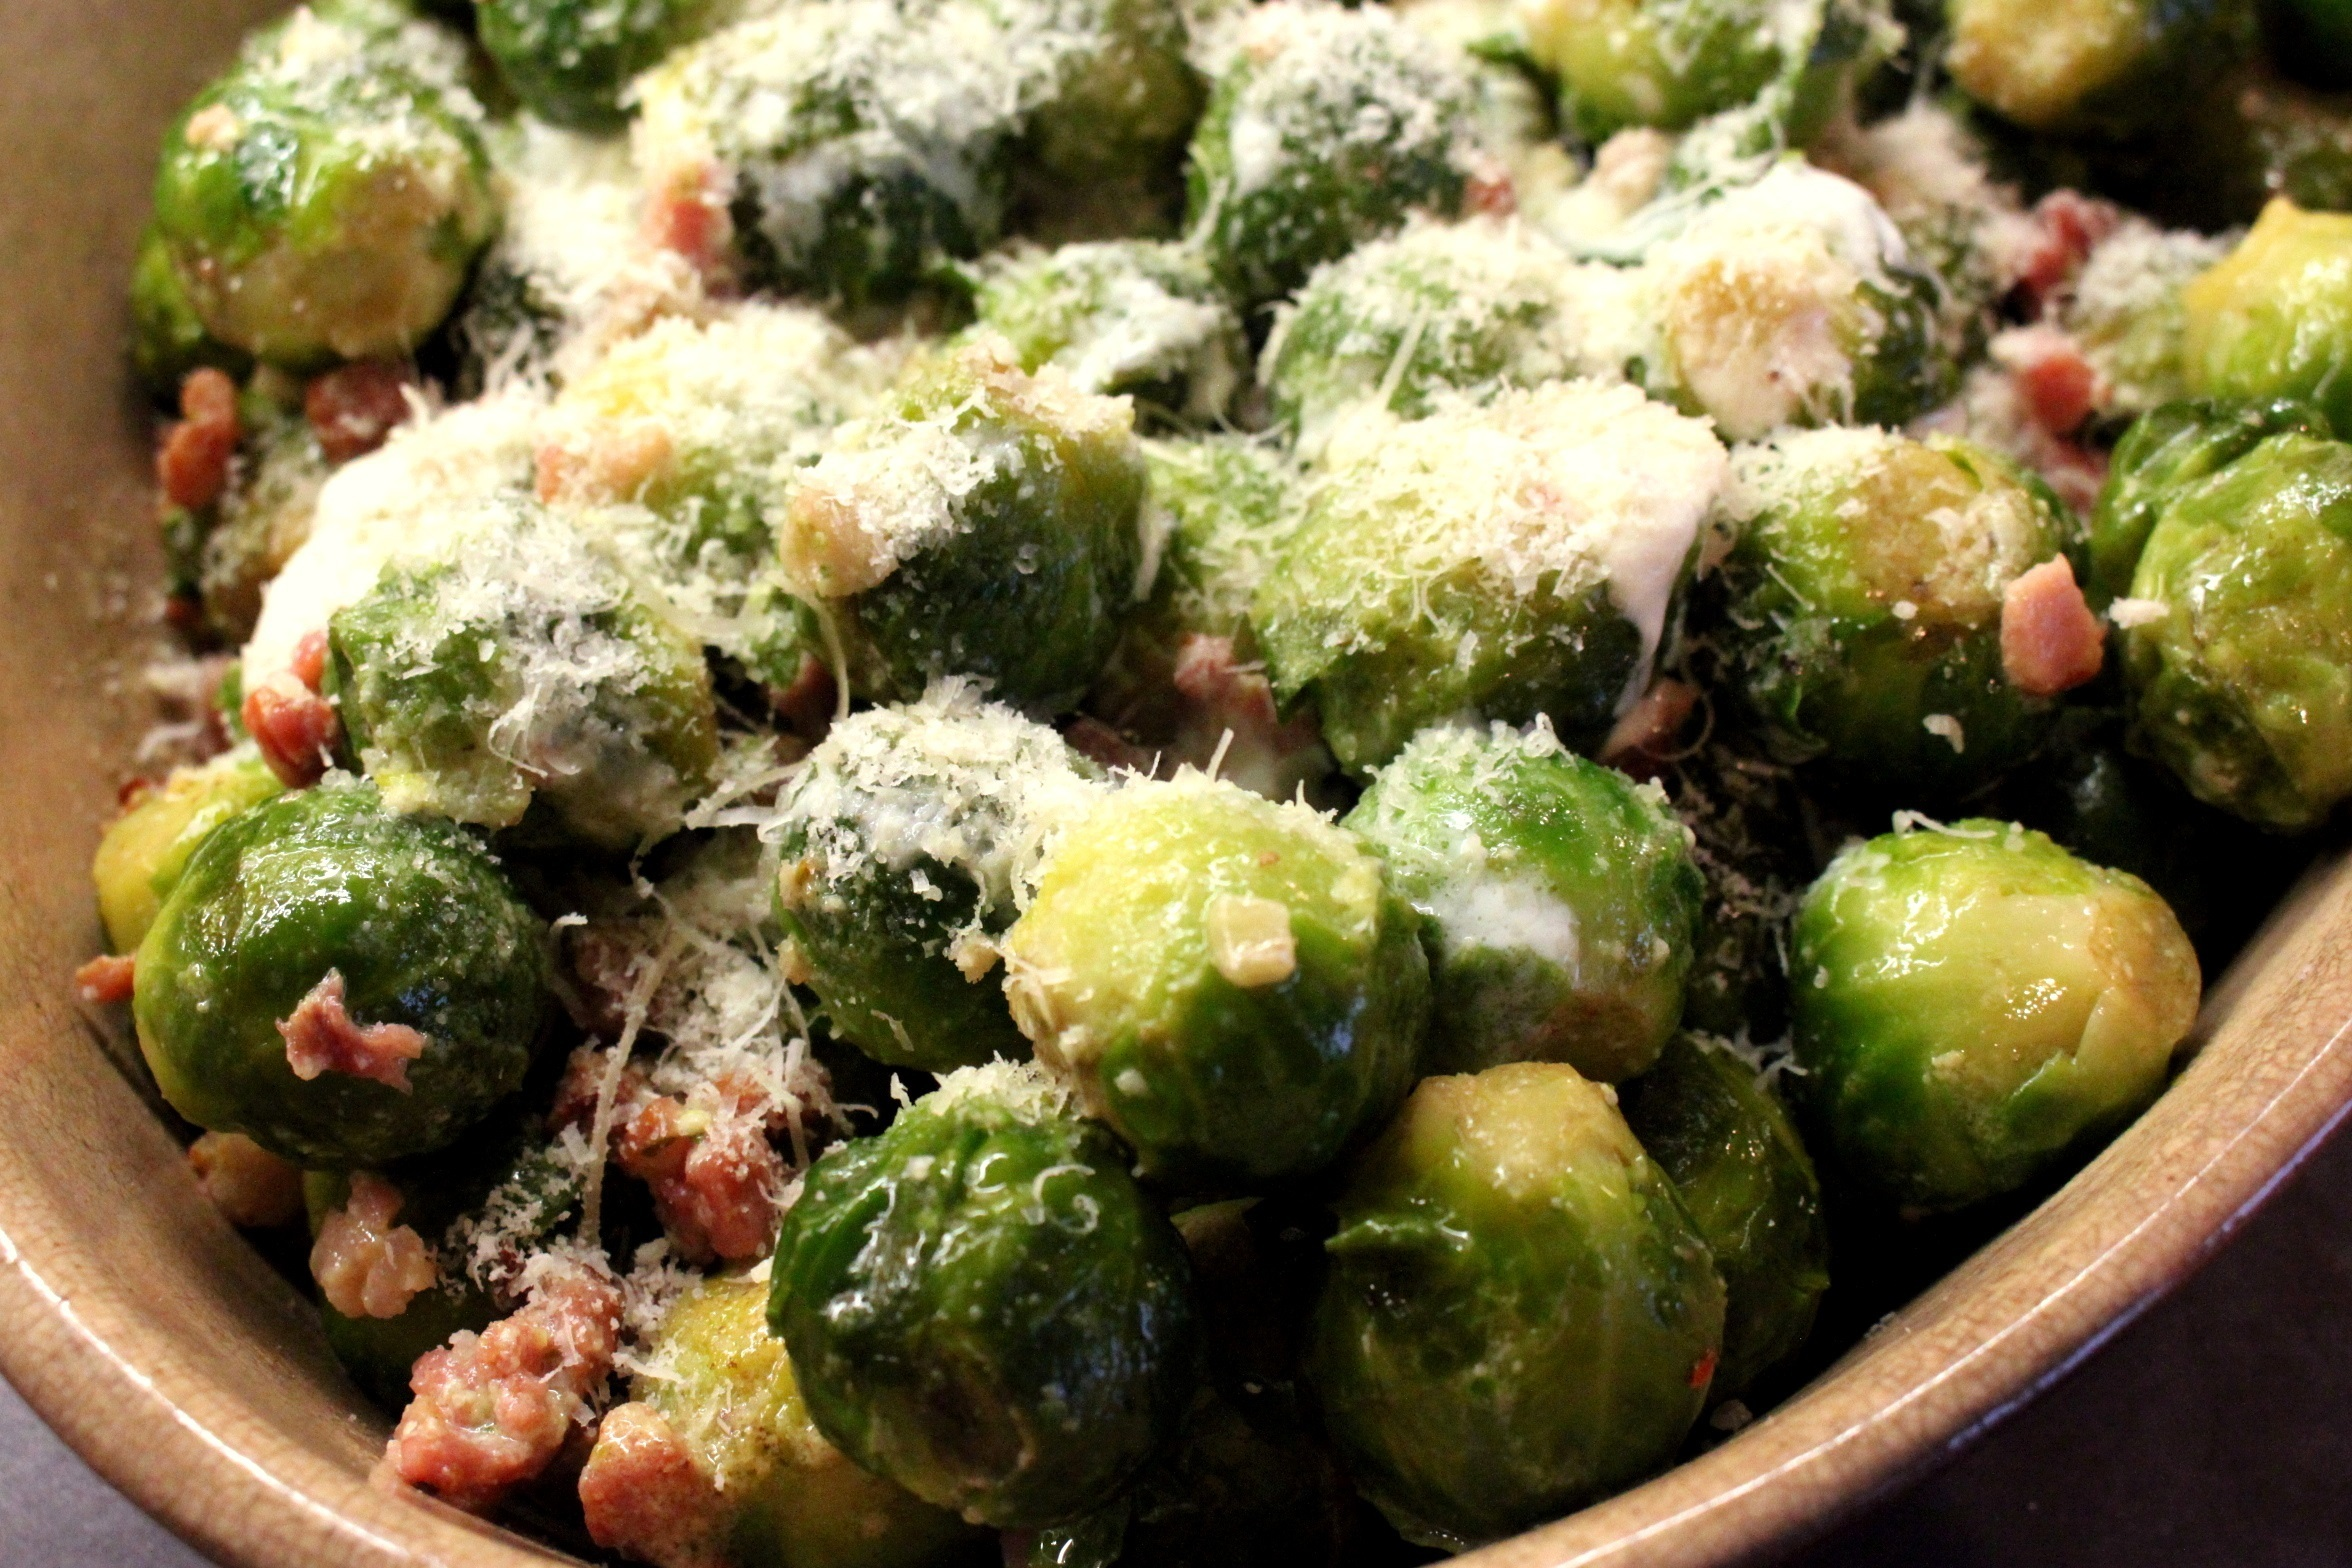 Rosenkohl mit Speck – Brussels Sprouts with Bacon